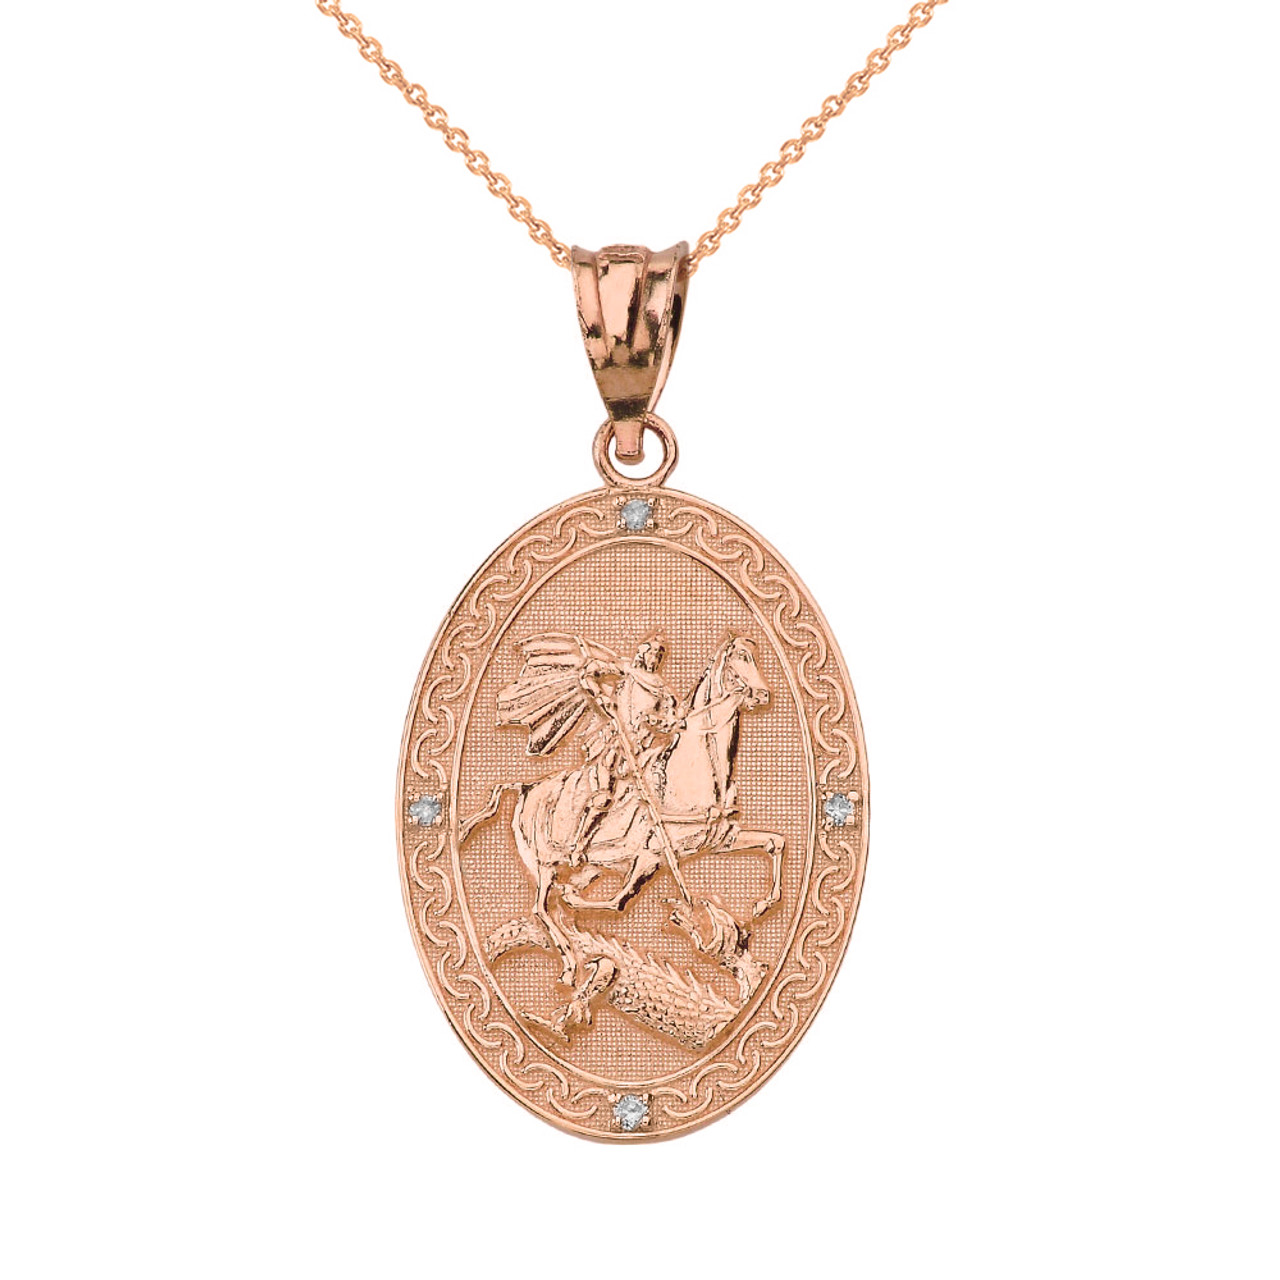 st la color georgius oracion in jorge jewelry de necklaces item dragon coin pendant george gold poderosa pendants saint plated anniyo san sanctus from killing